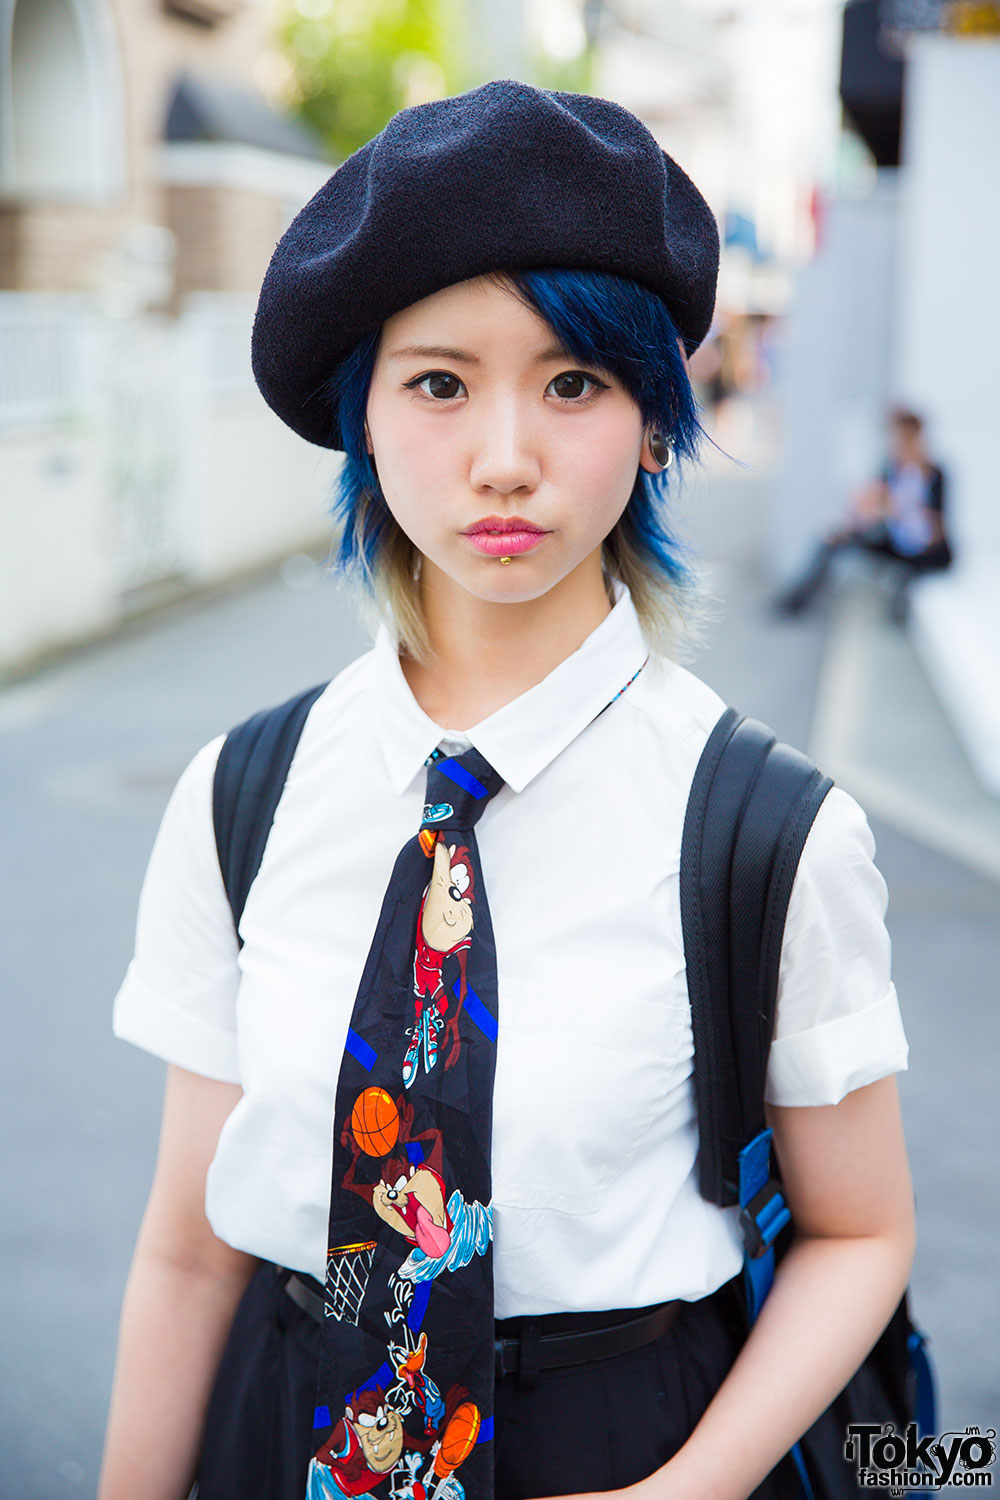 Harajuku Girl w/ Blue Hair, Piercings, Beret & Looney ...